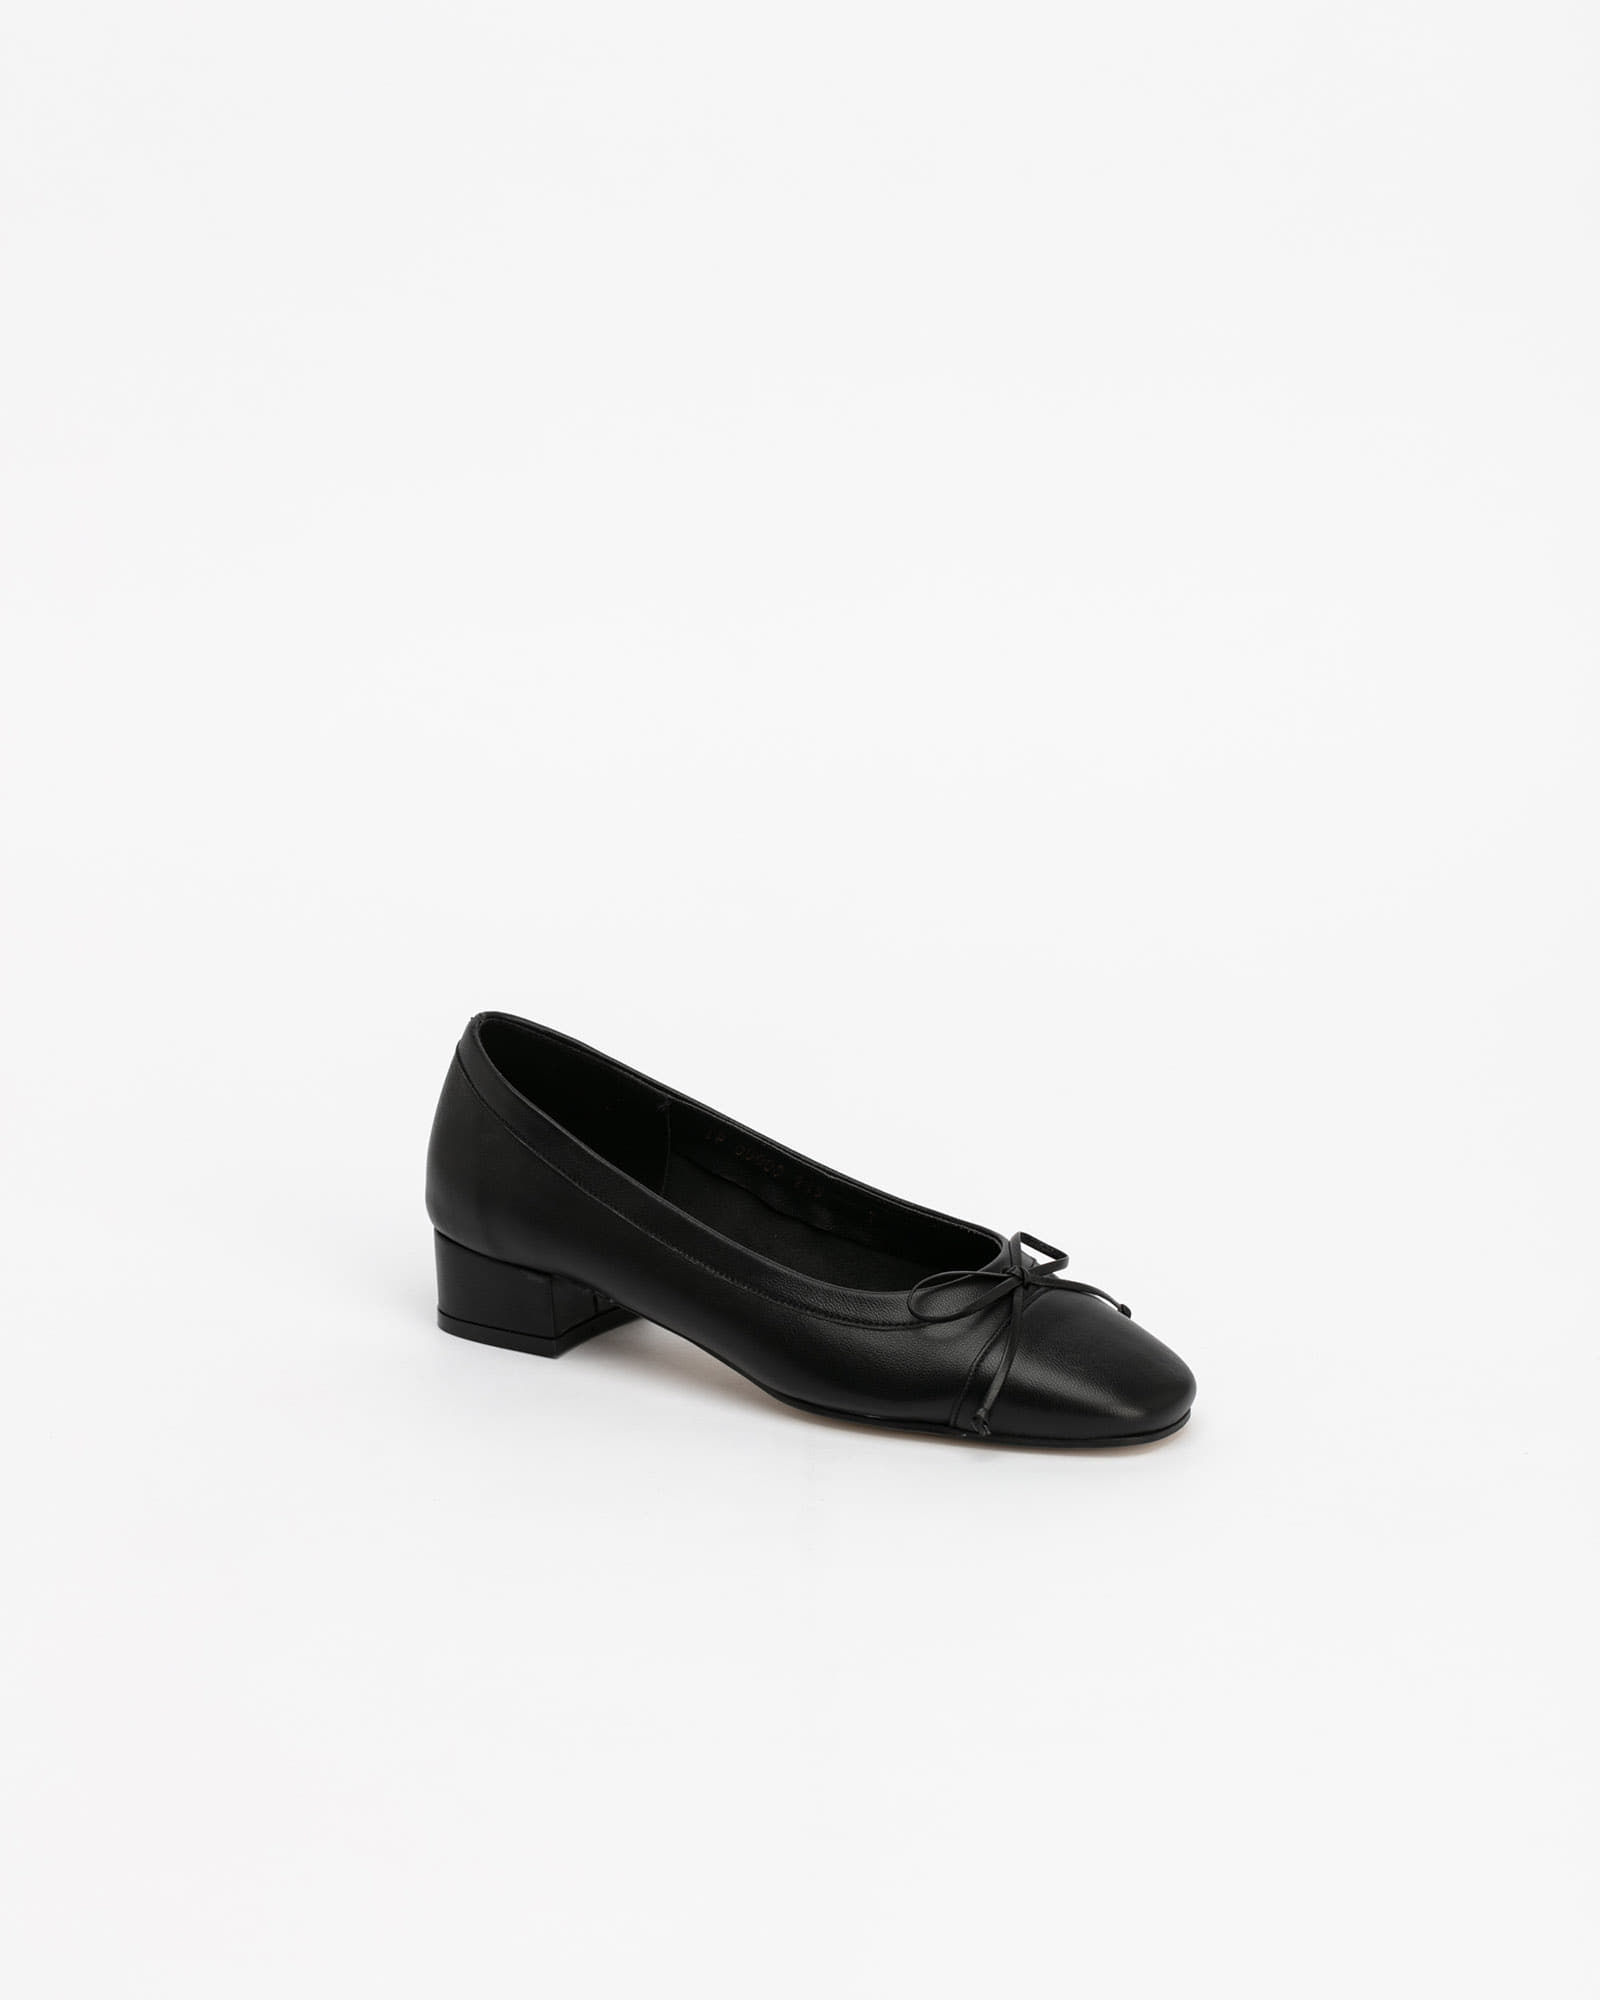 Alice Soft Ballerinas in Black